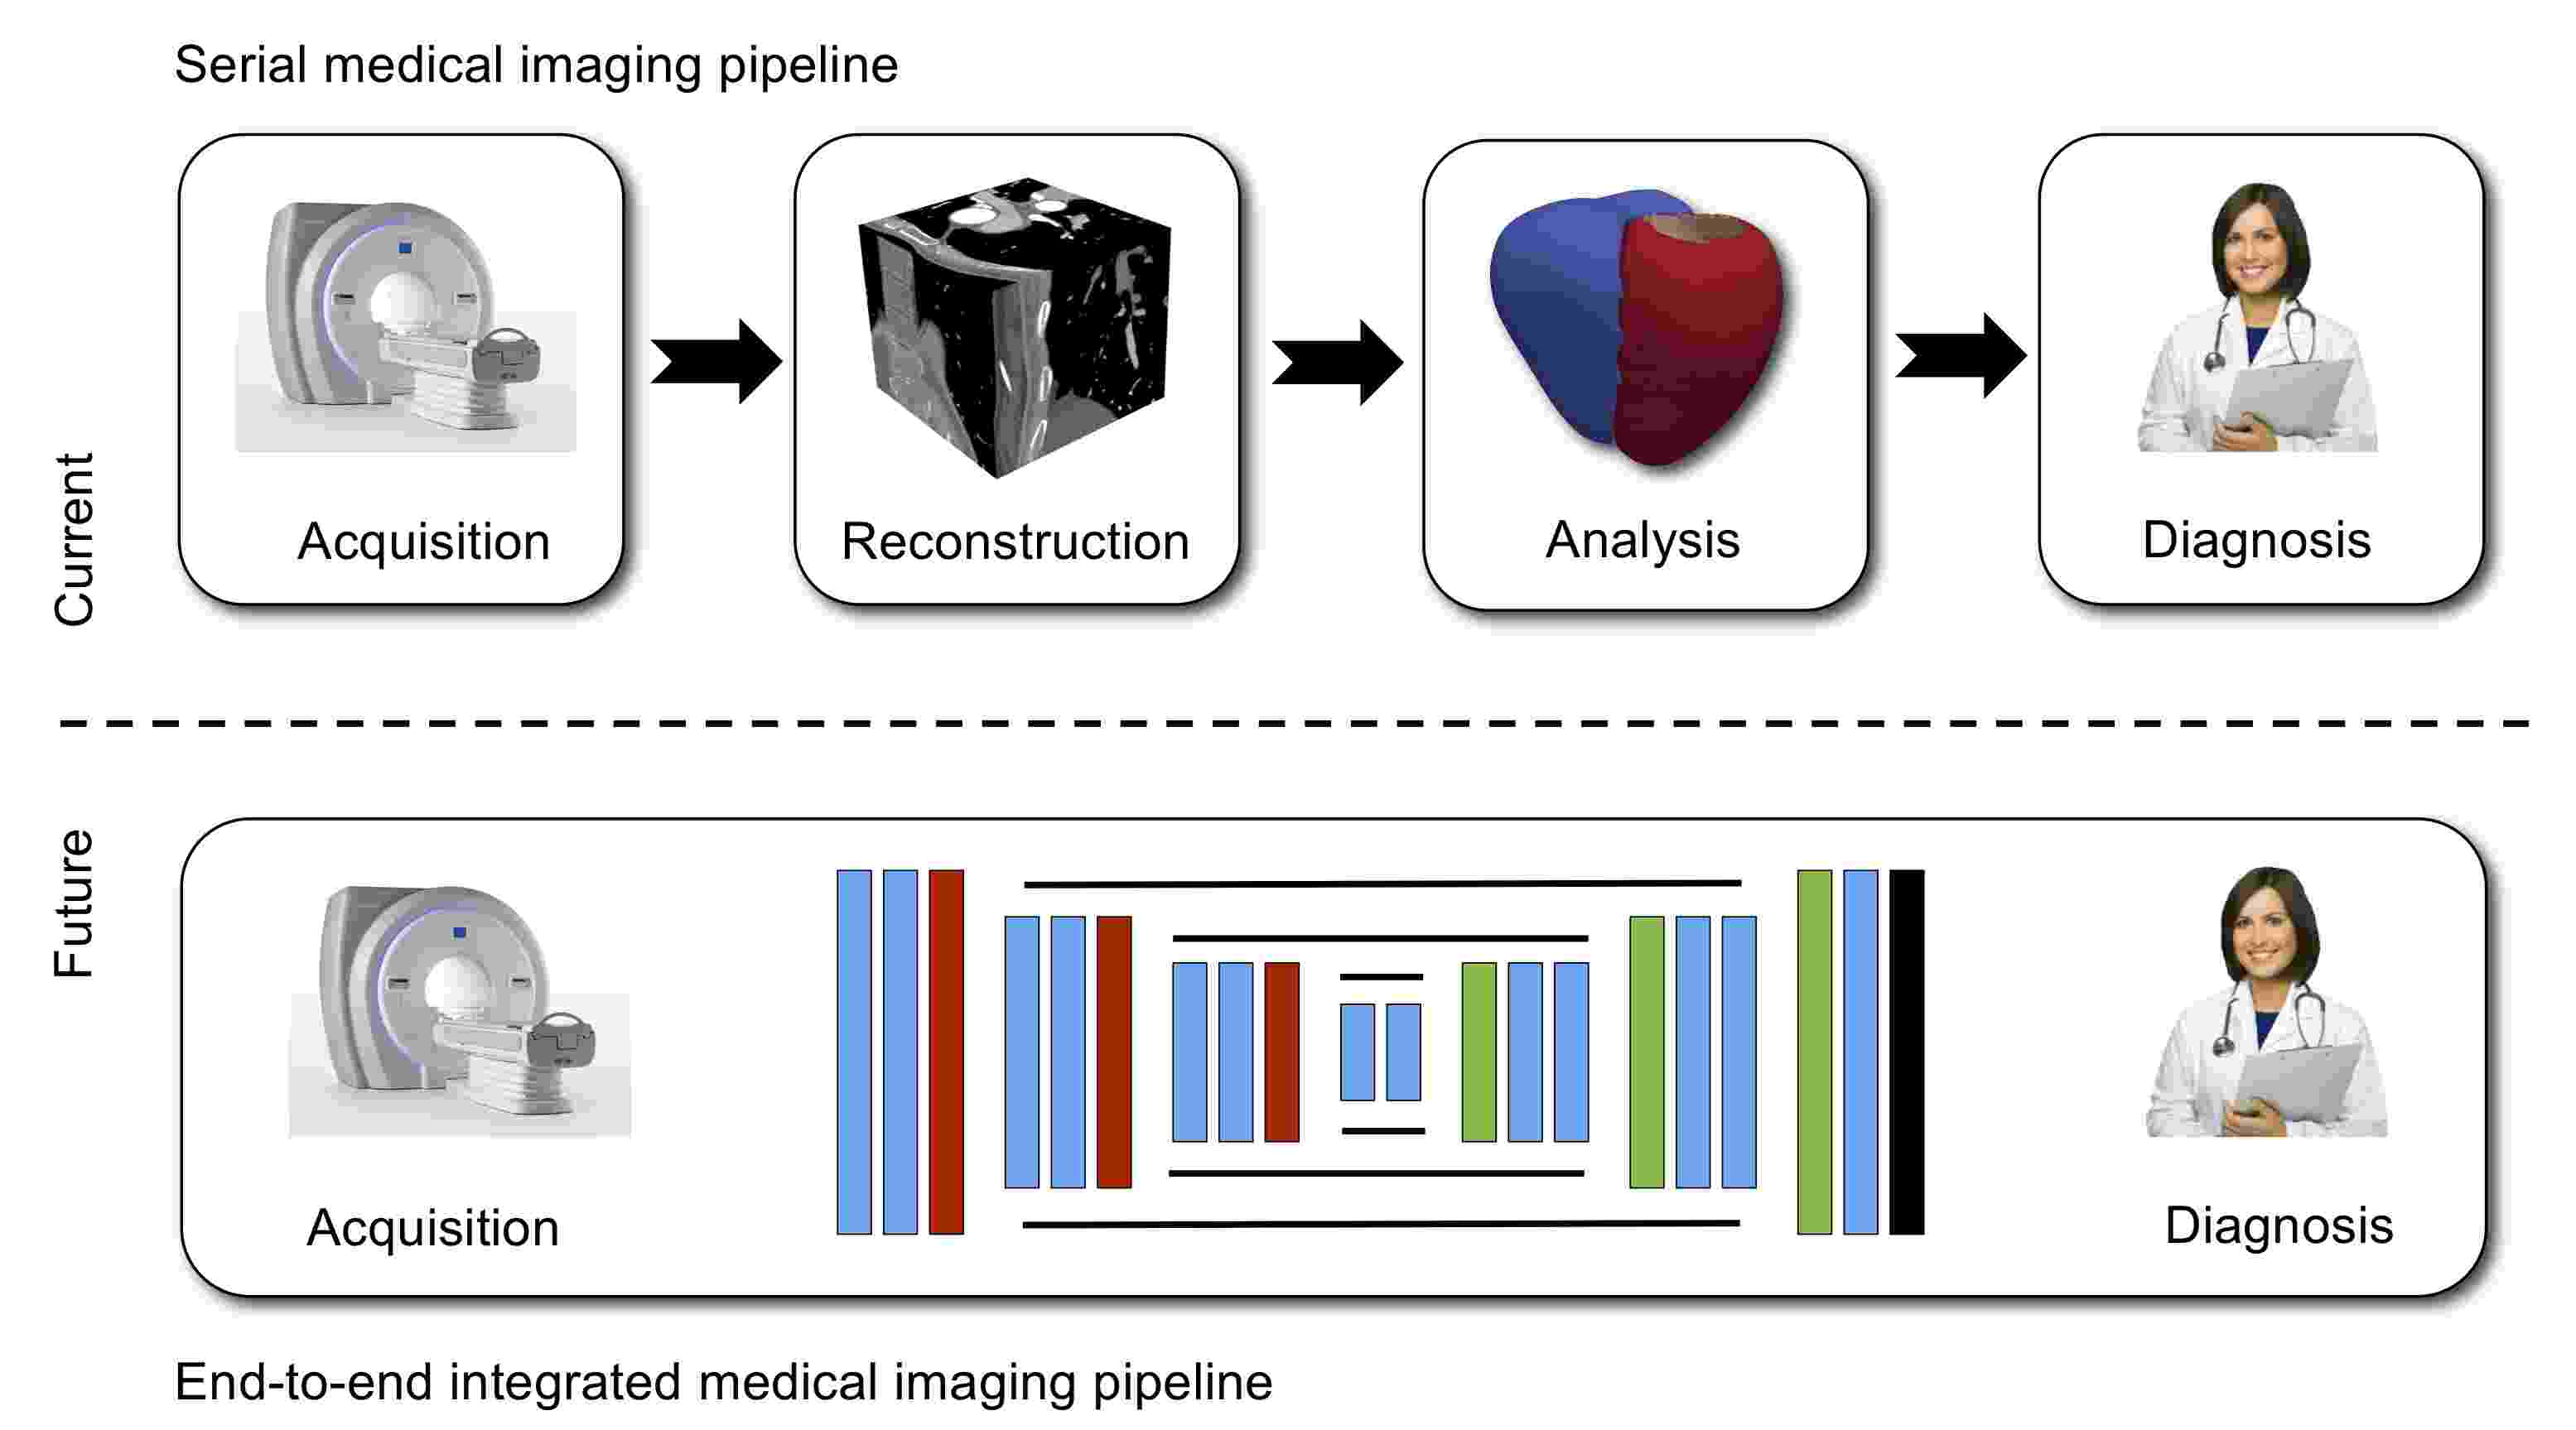 Model-Based and Data-Driven Strategies in Medical Image